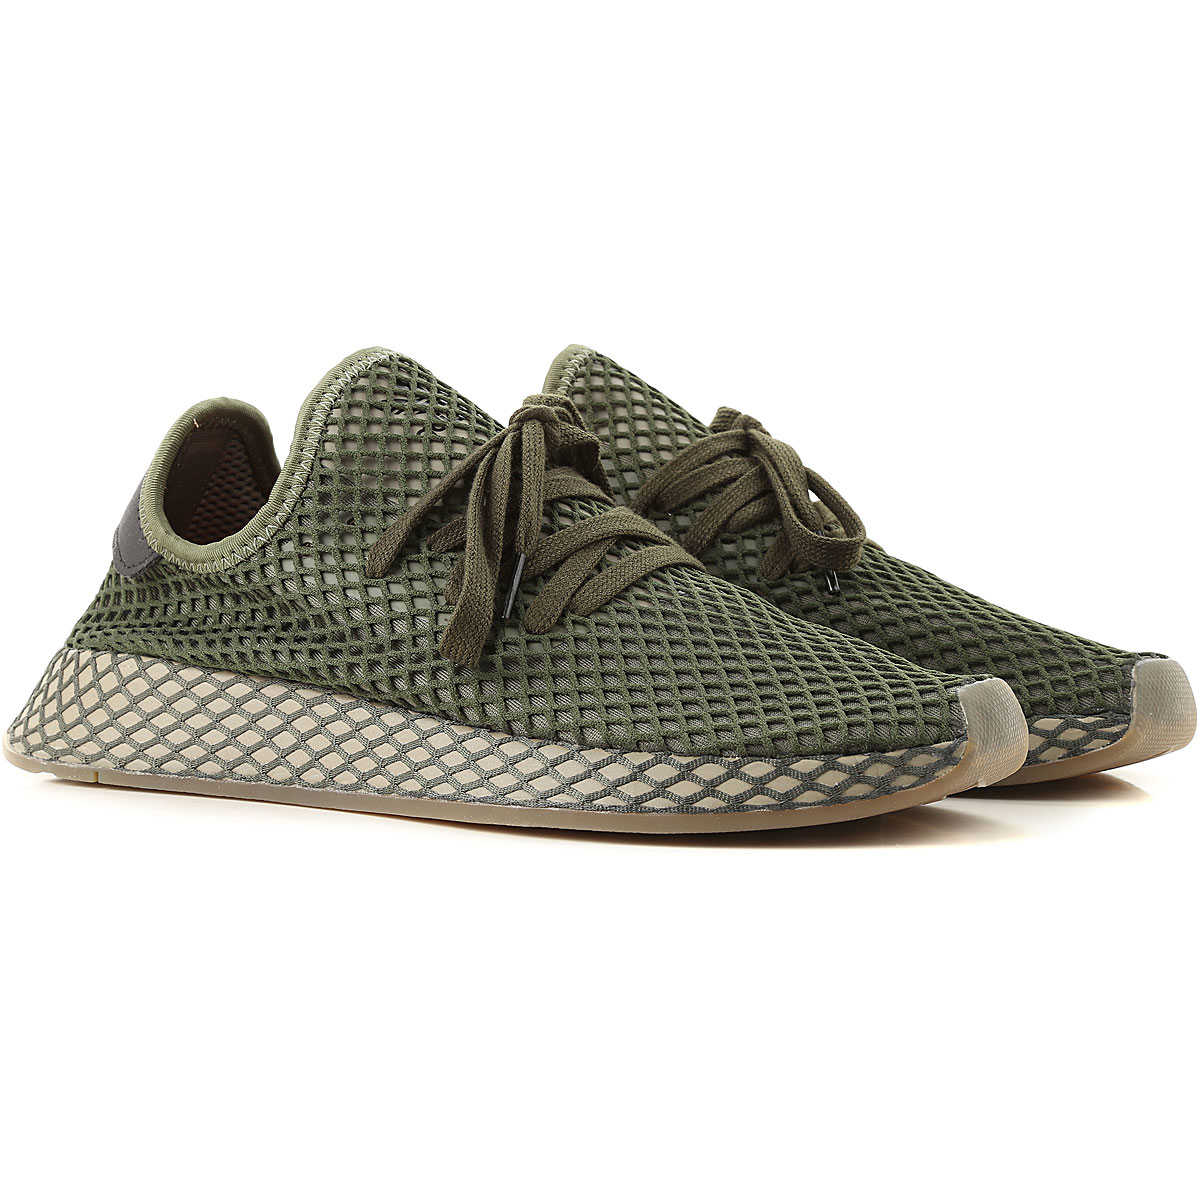 Adidas Sneakers for Men On Sale